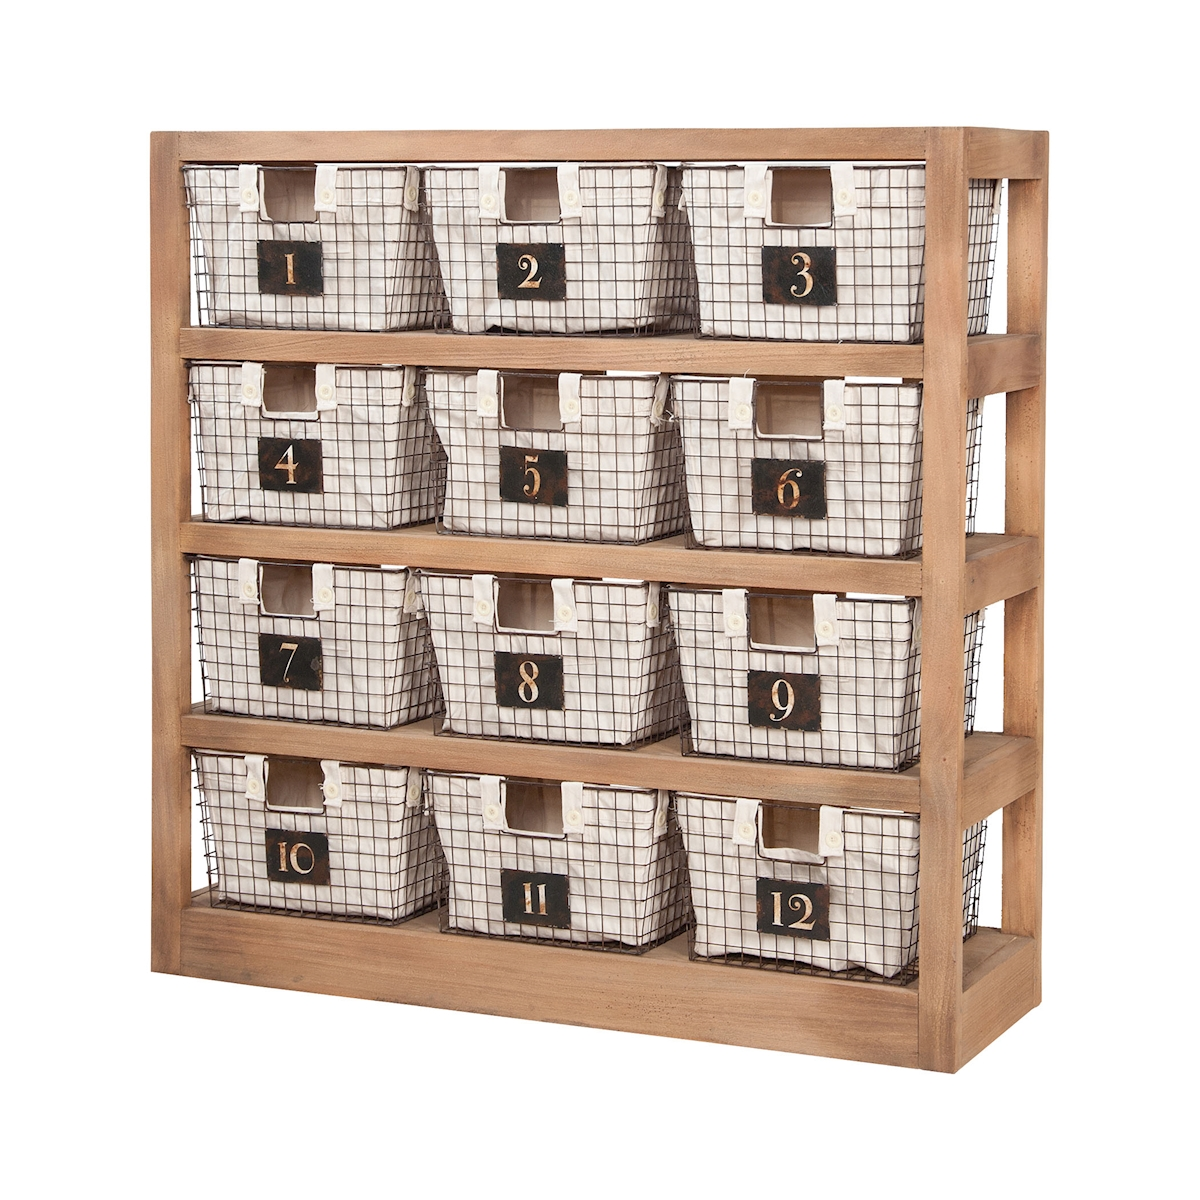 Shelving Unit with 12 Locker Baskets | Elk Home